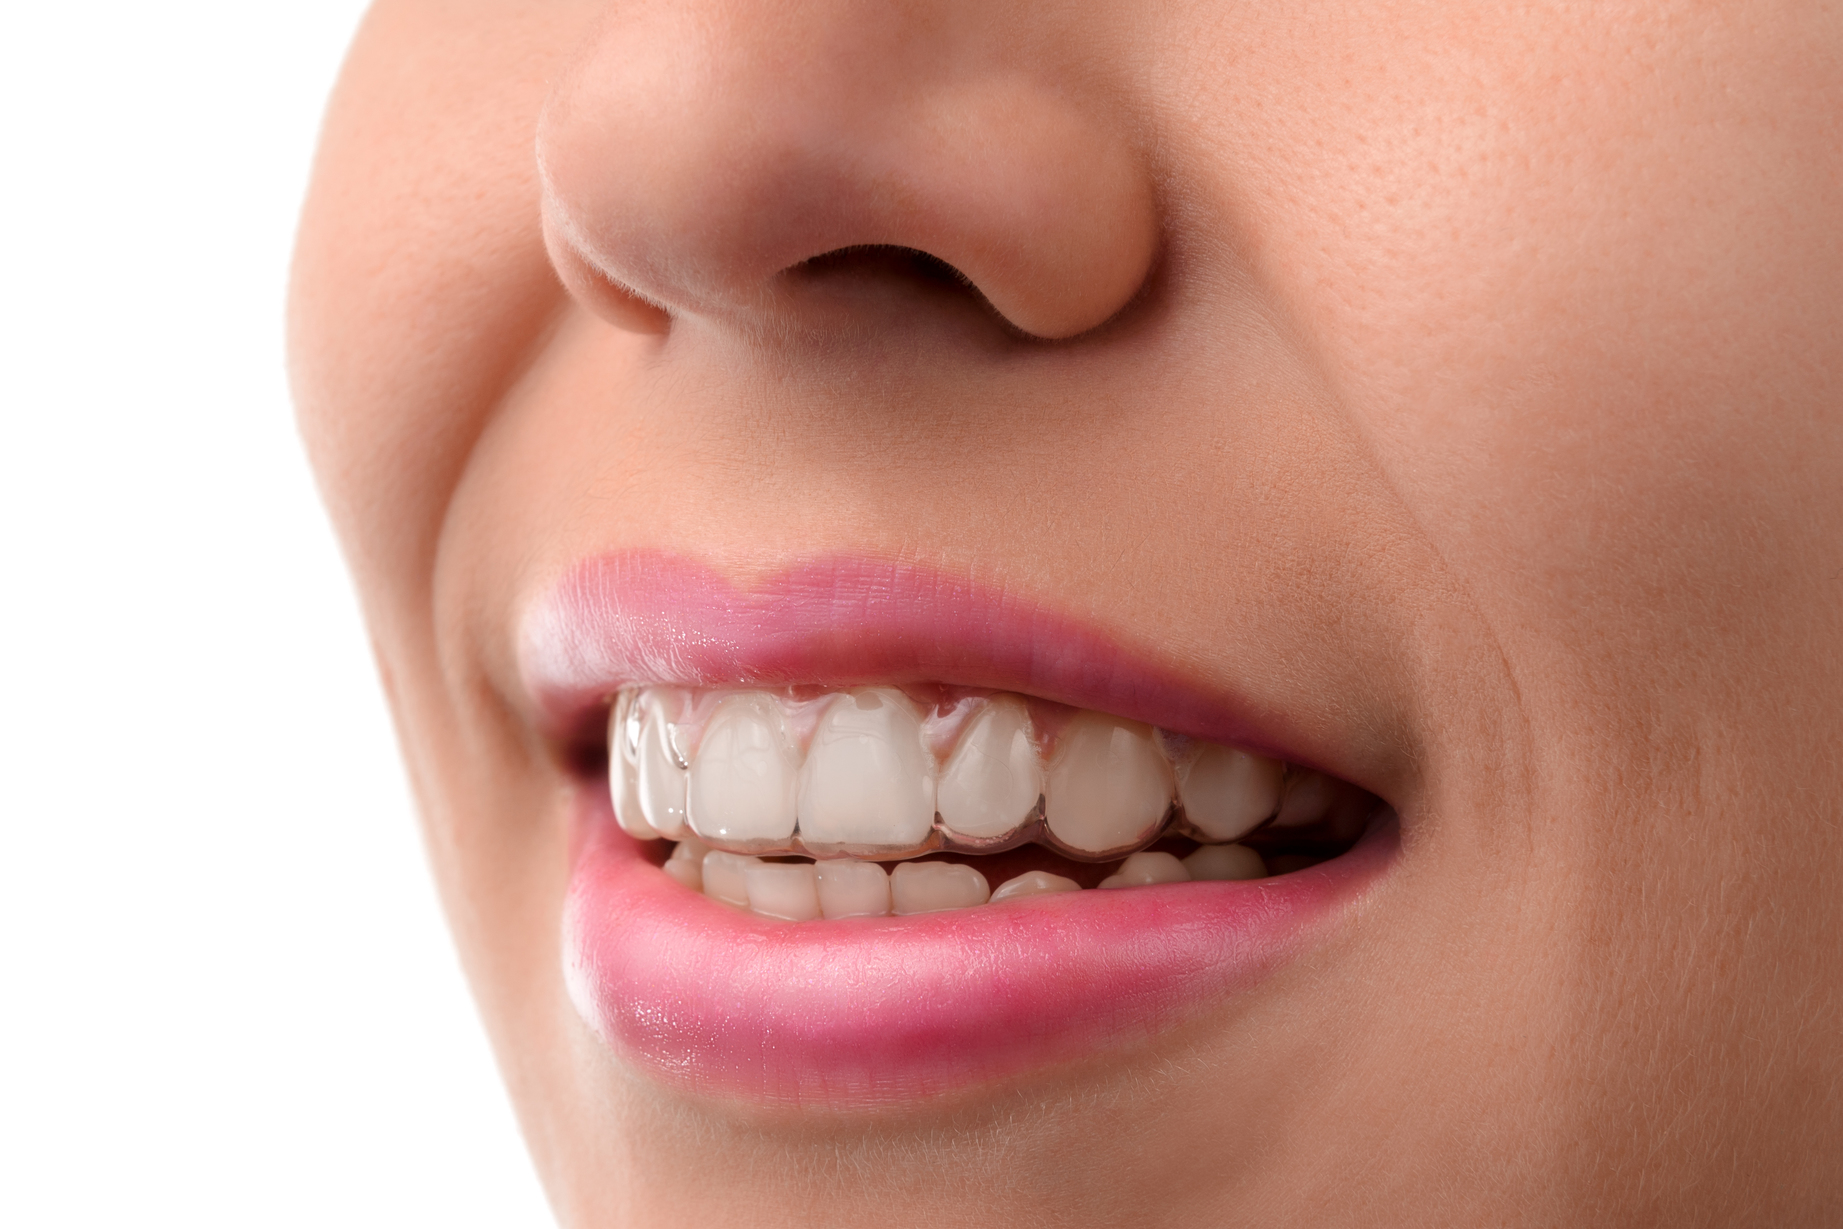 Questions to Ask Your Dentist About Invisalign